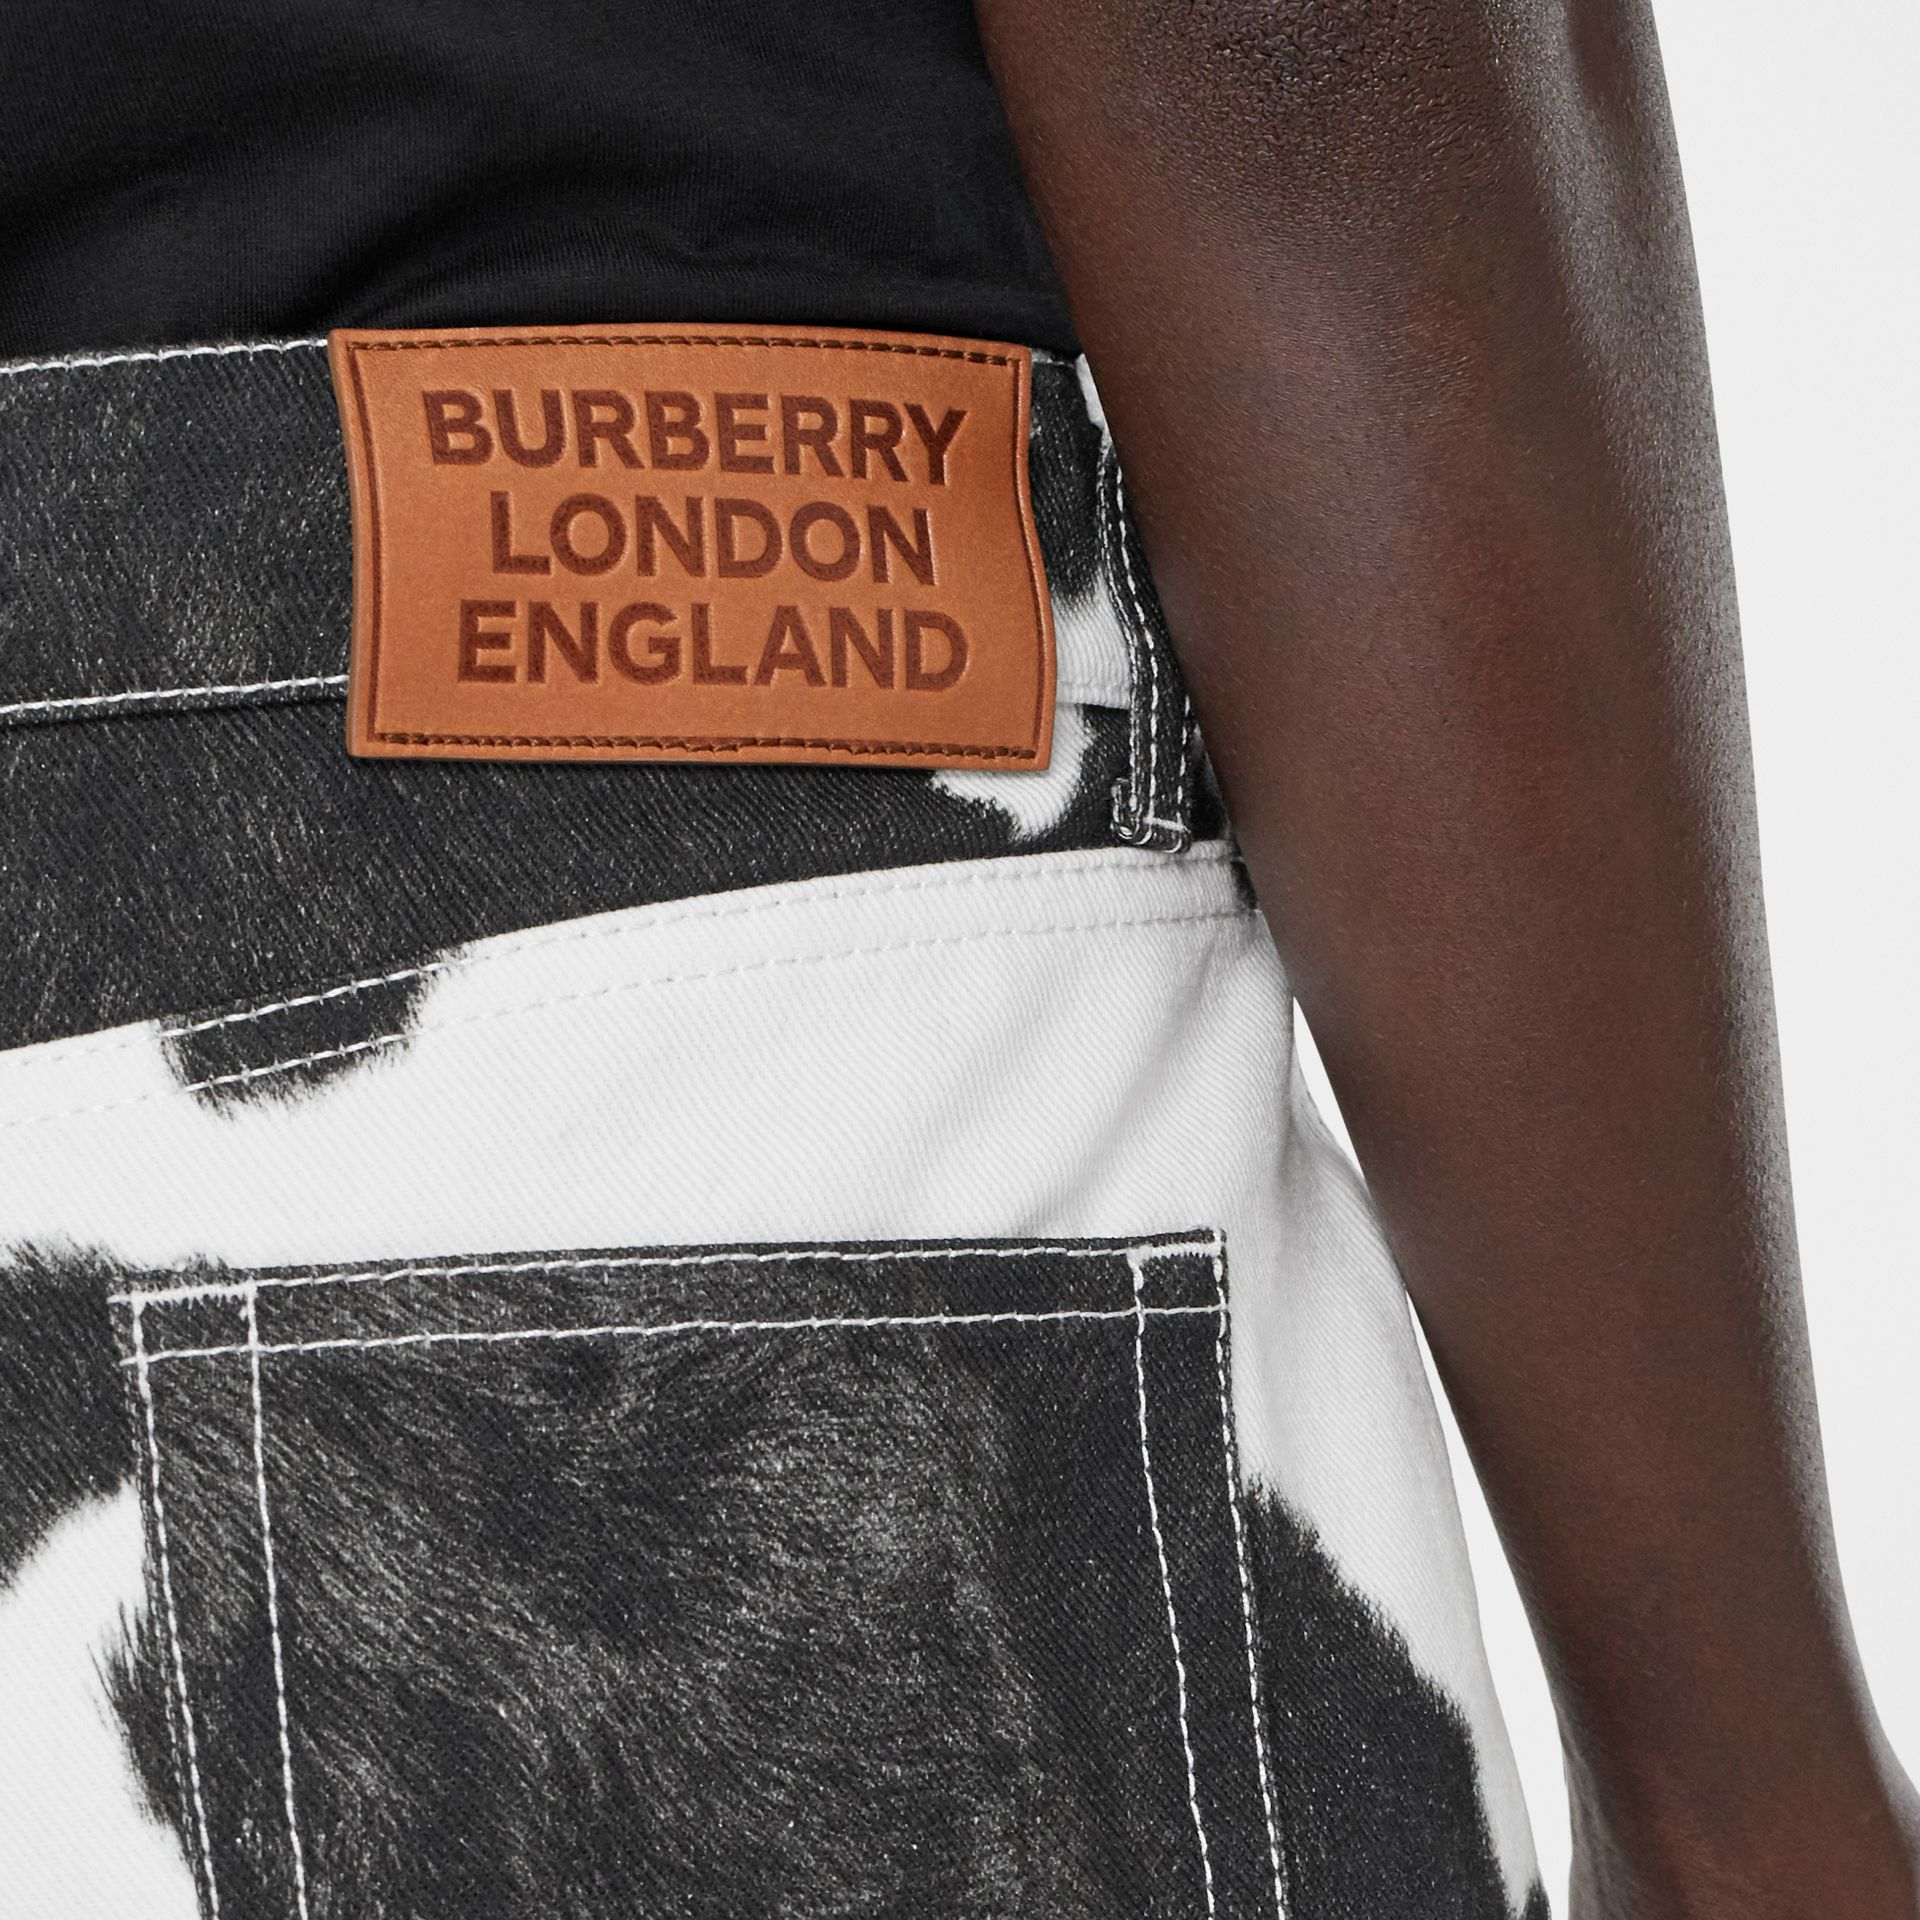 Straight Fit Cow Print Jeans in Black - Women | Burberry Canada - gallery image 1